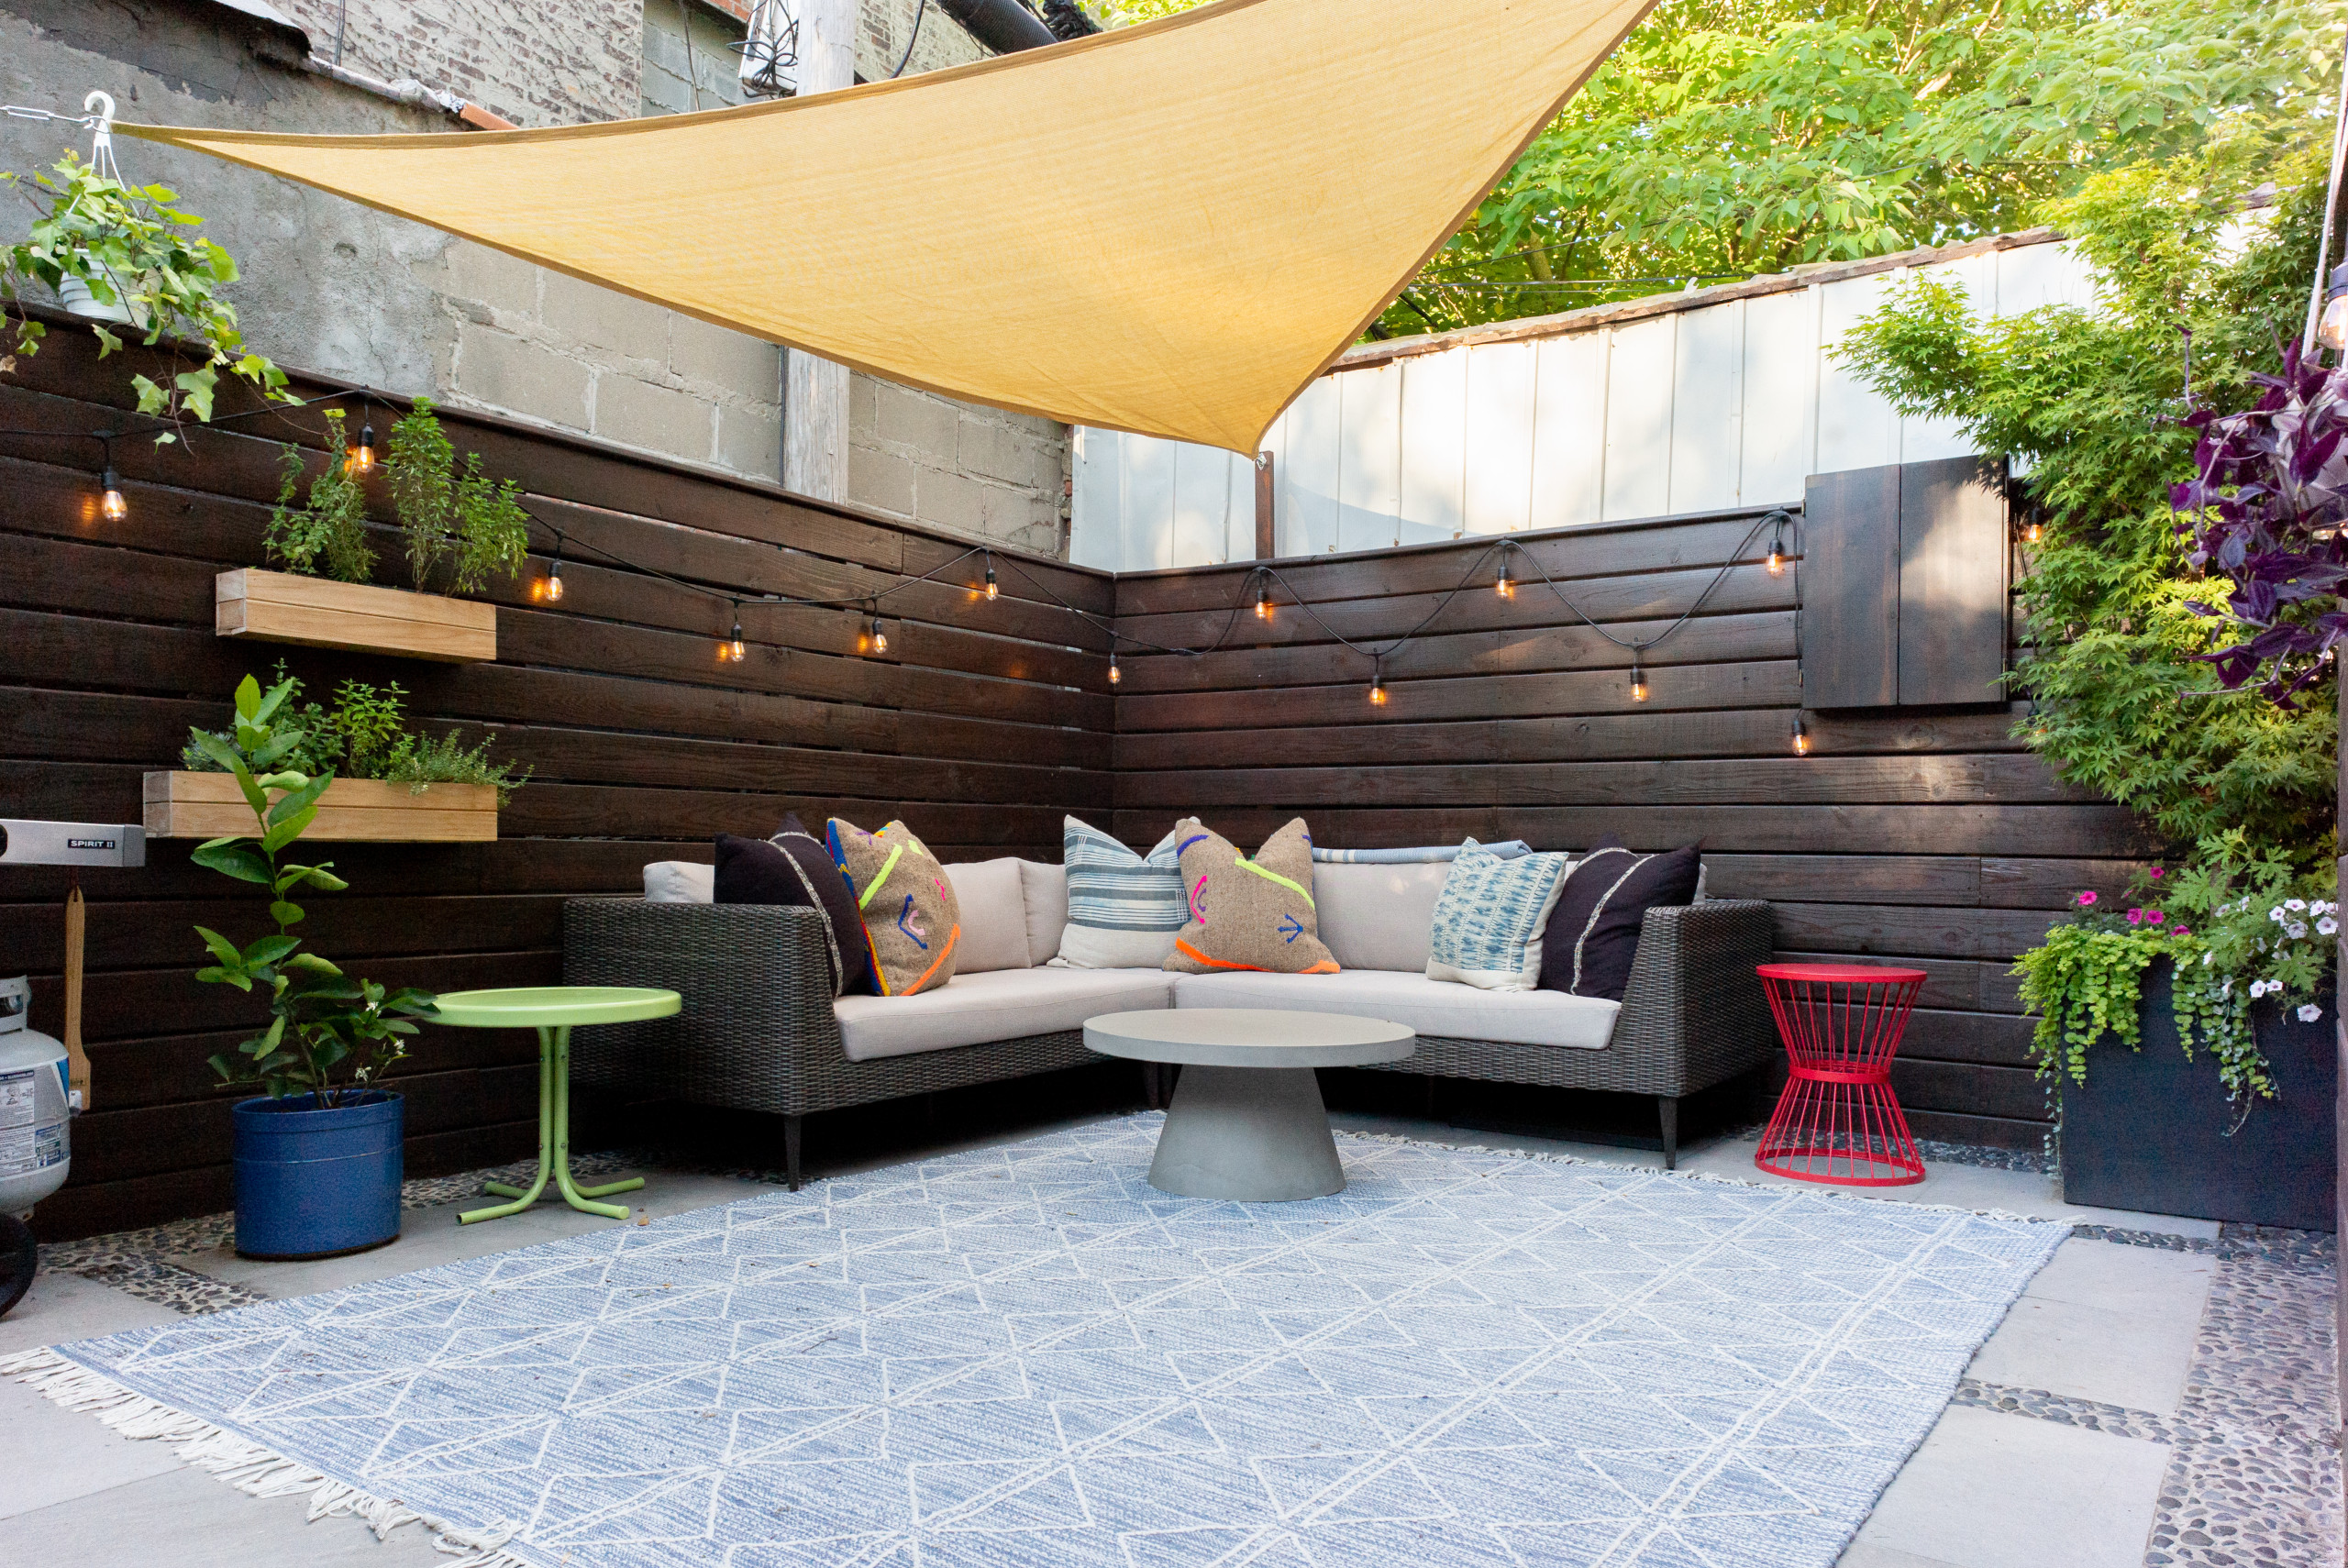 75 Beautiful Backyard Patio Design Ideas Pictures Houzz